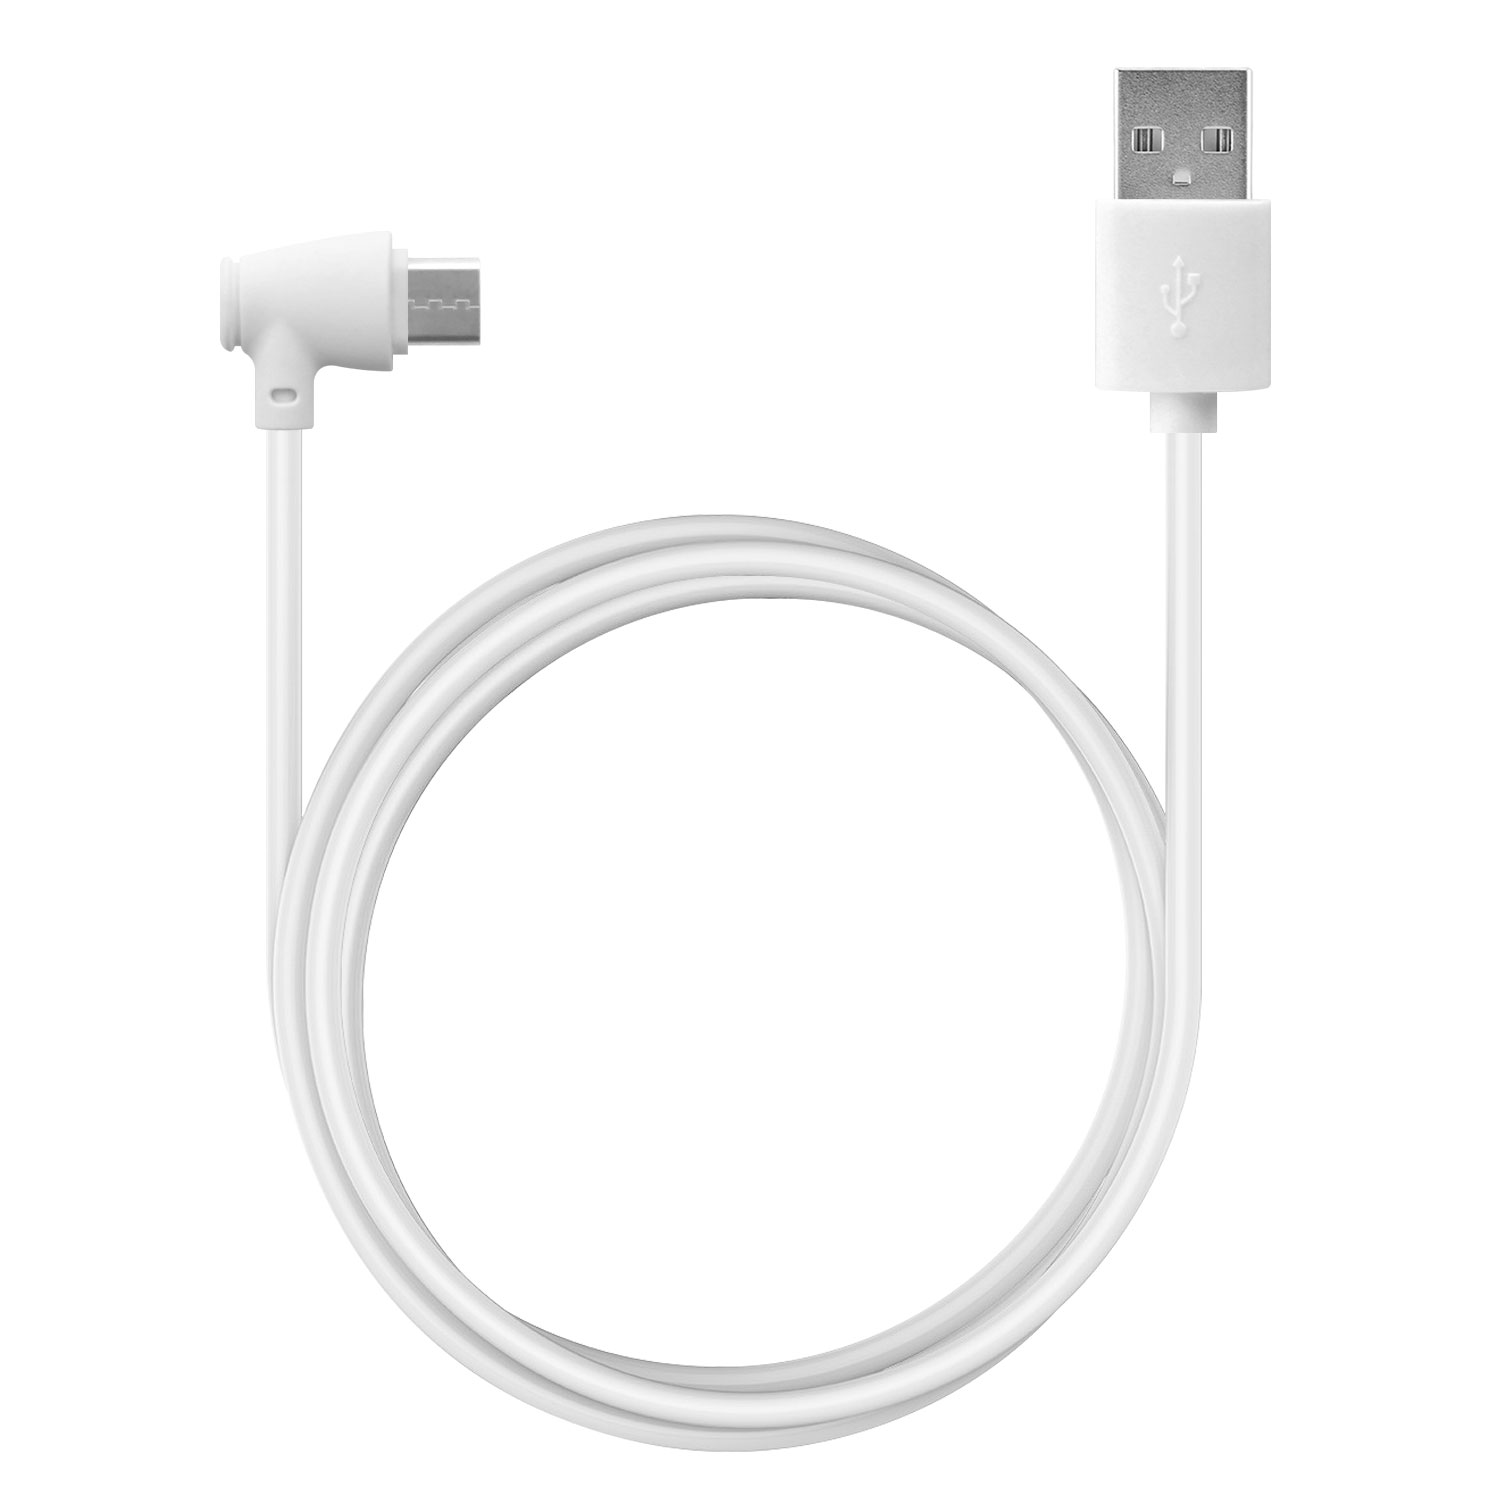 ZTE Blade V8 Pro USB Type-C To USB Type-A Data Charging Cable White 3.3ft Angled